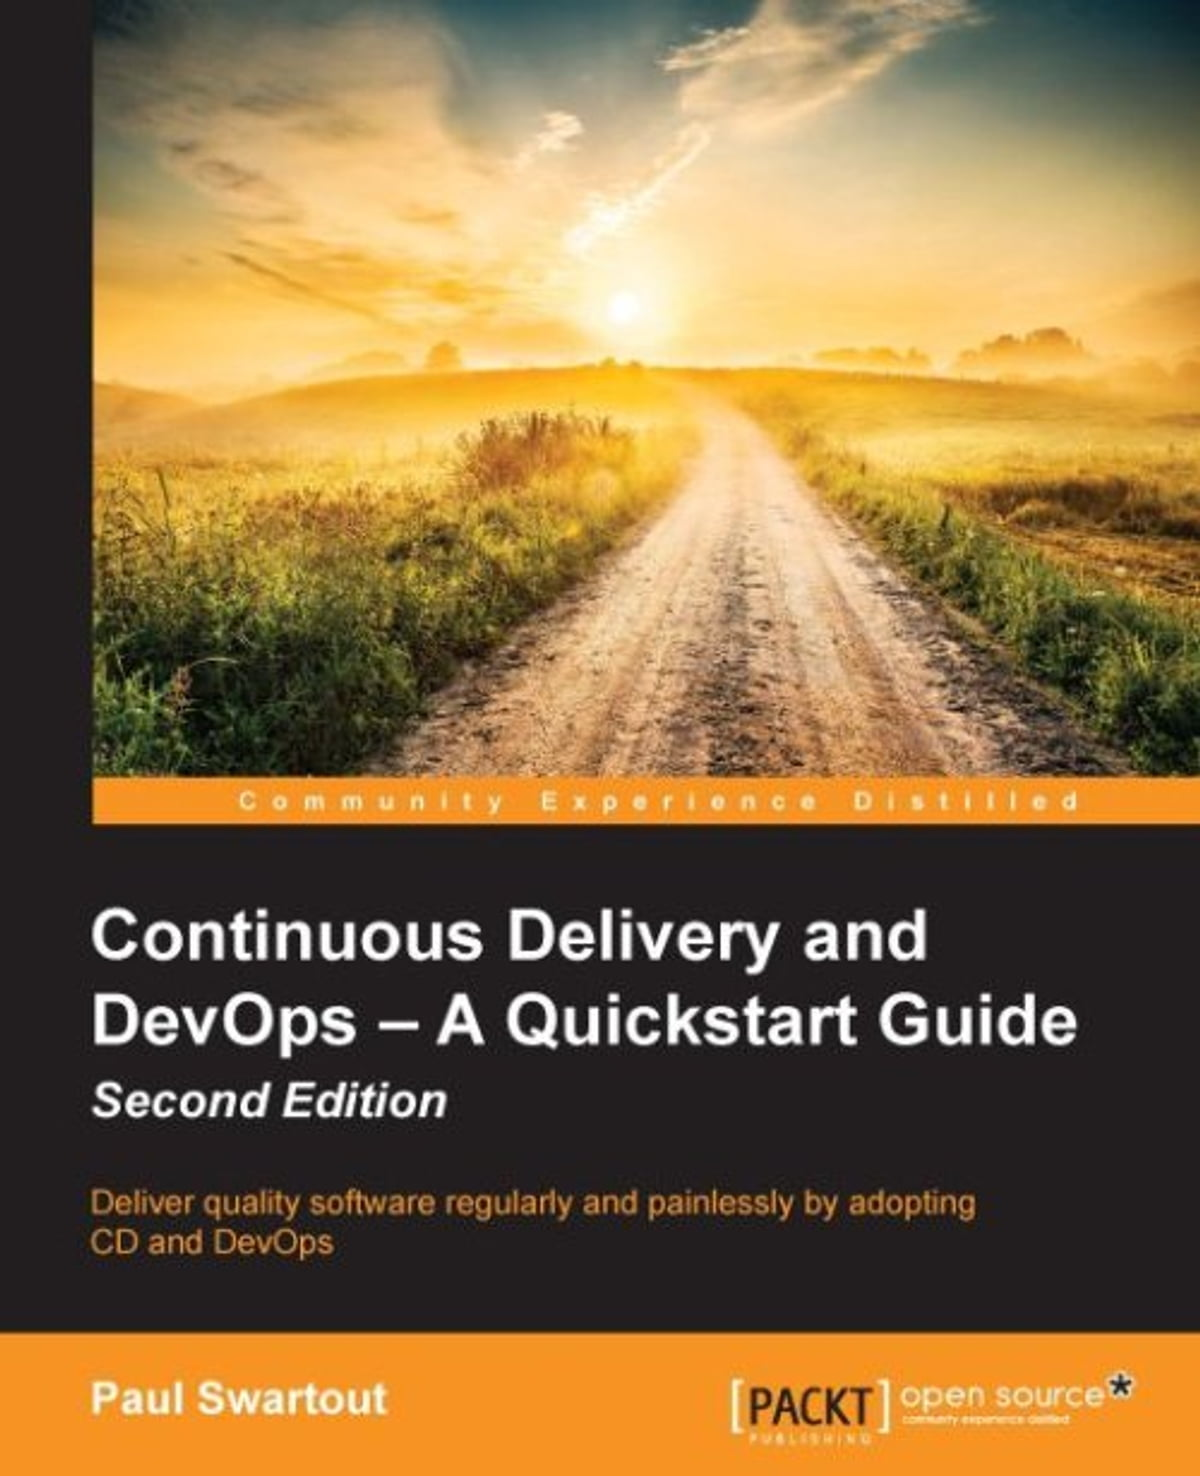 Continuous Delivery and DevOps — A Quickstart Guide - Second Edition eBook  by Paul Swartout - 9781784391614 | Rakuten Kobo